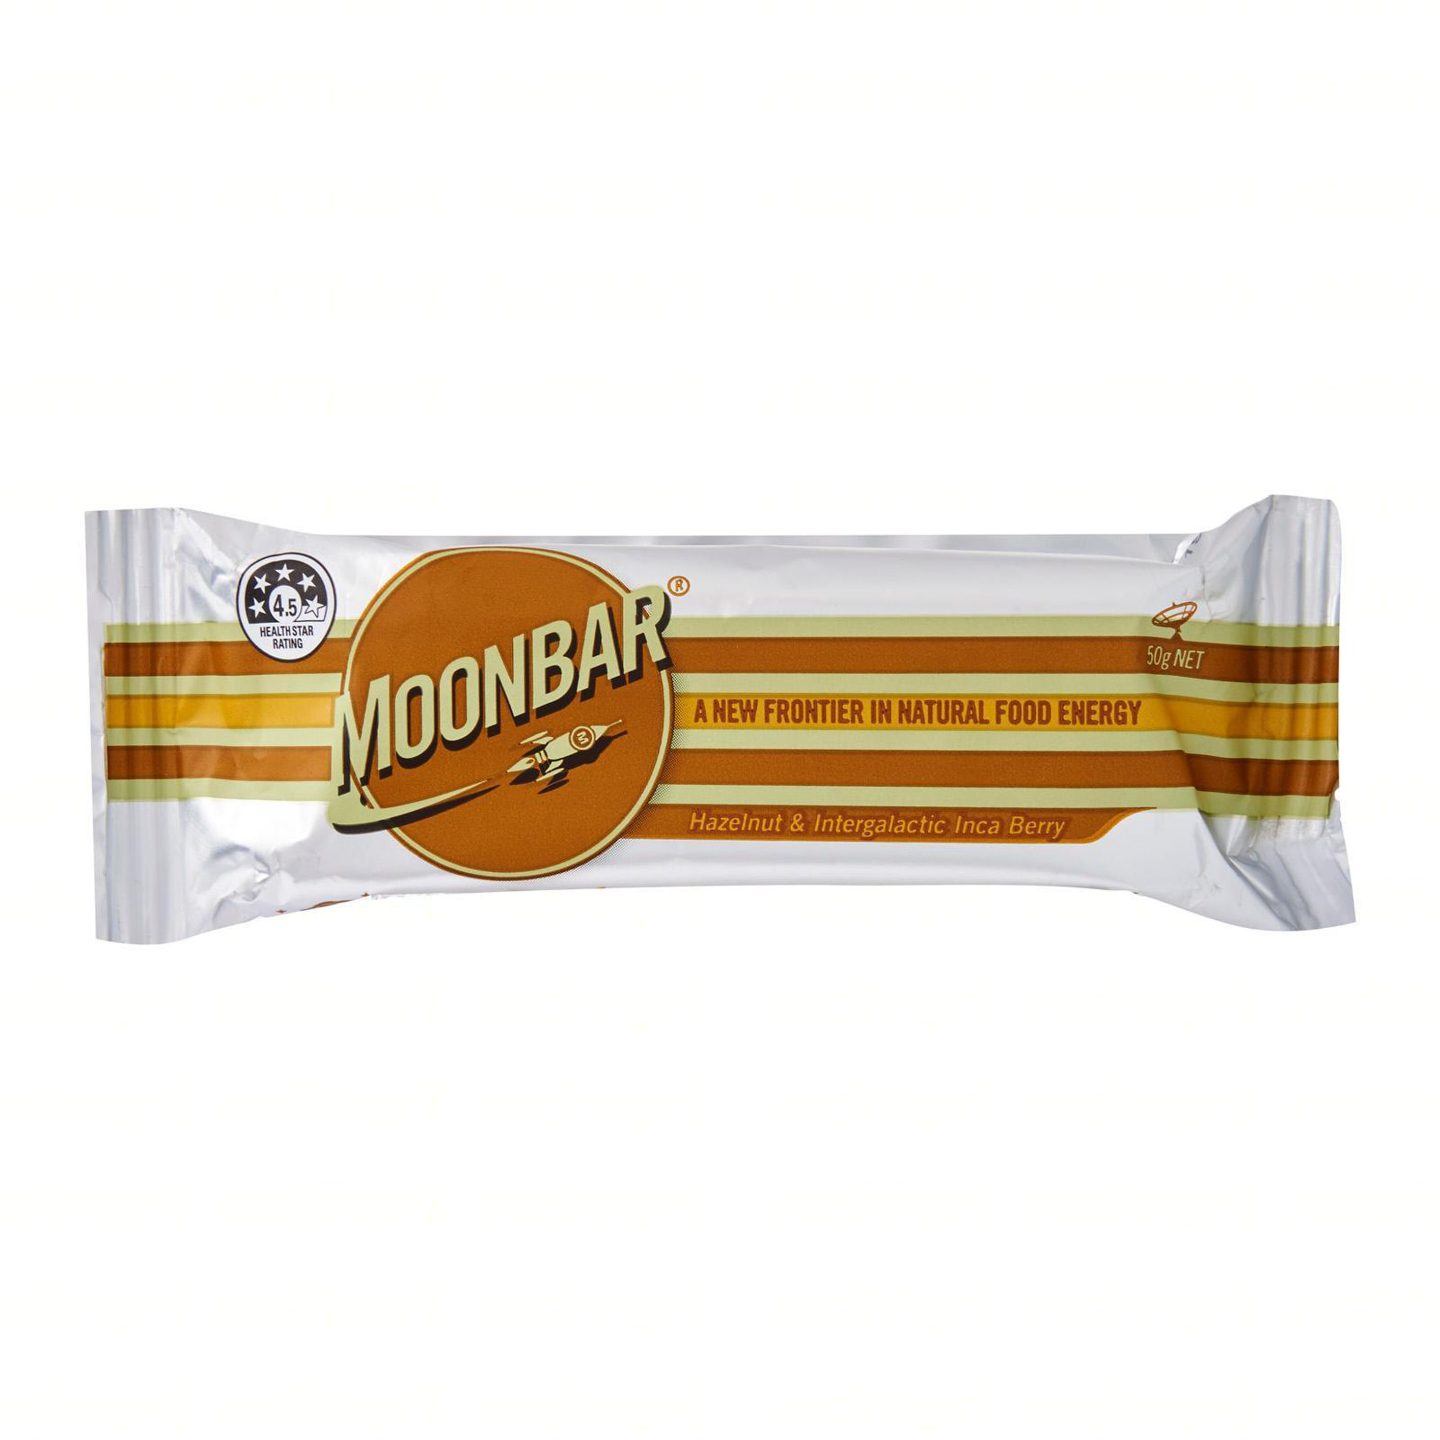 Moonbar Hazelnut & Intergalactic Inca Berry 50g